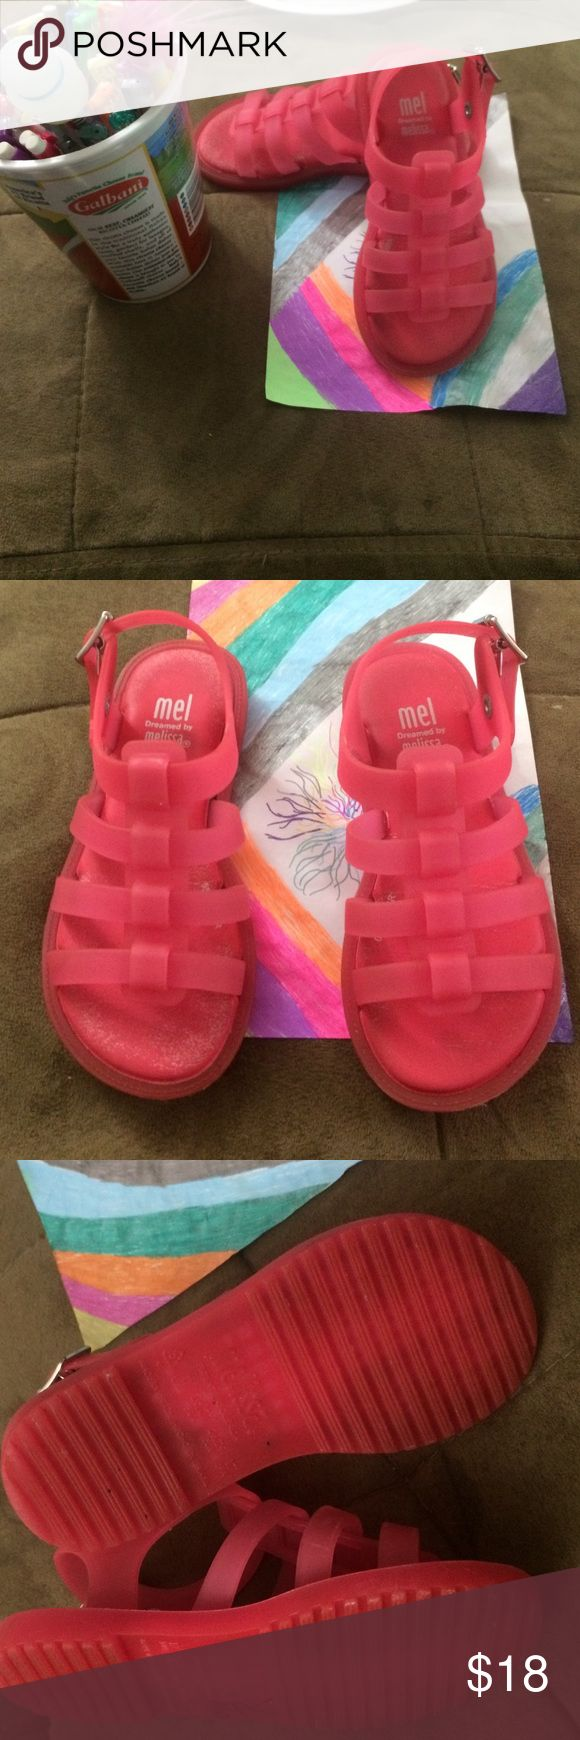 Melissa jelly sandals Used some fadding inside the shoes Melissa Shoes Sandals & Flip Flops